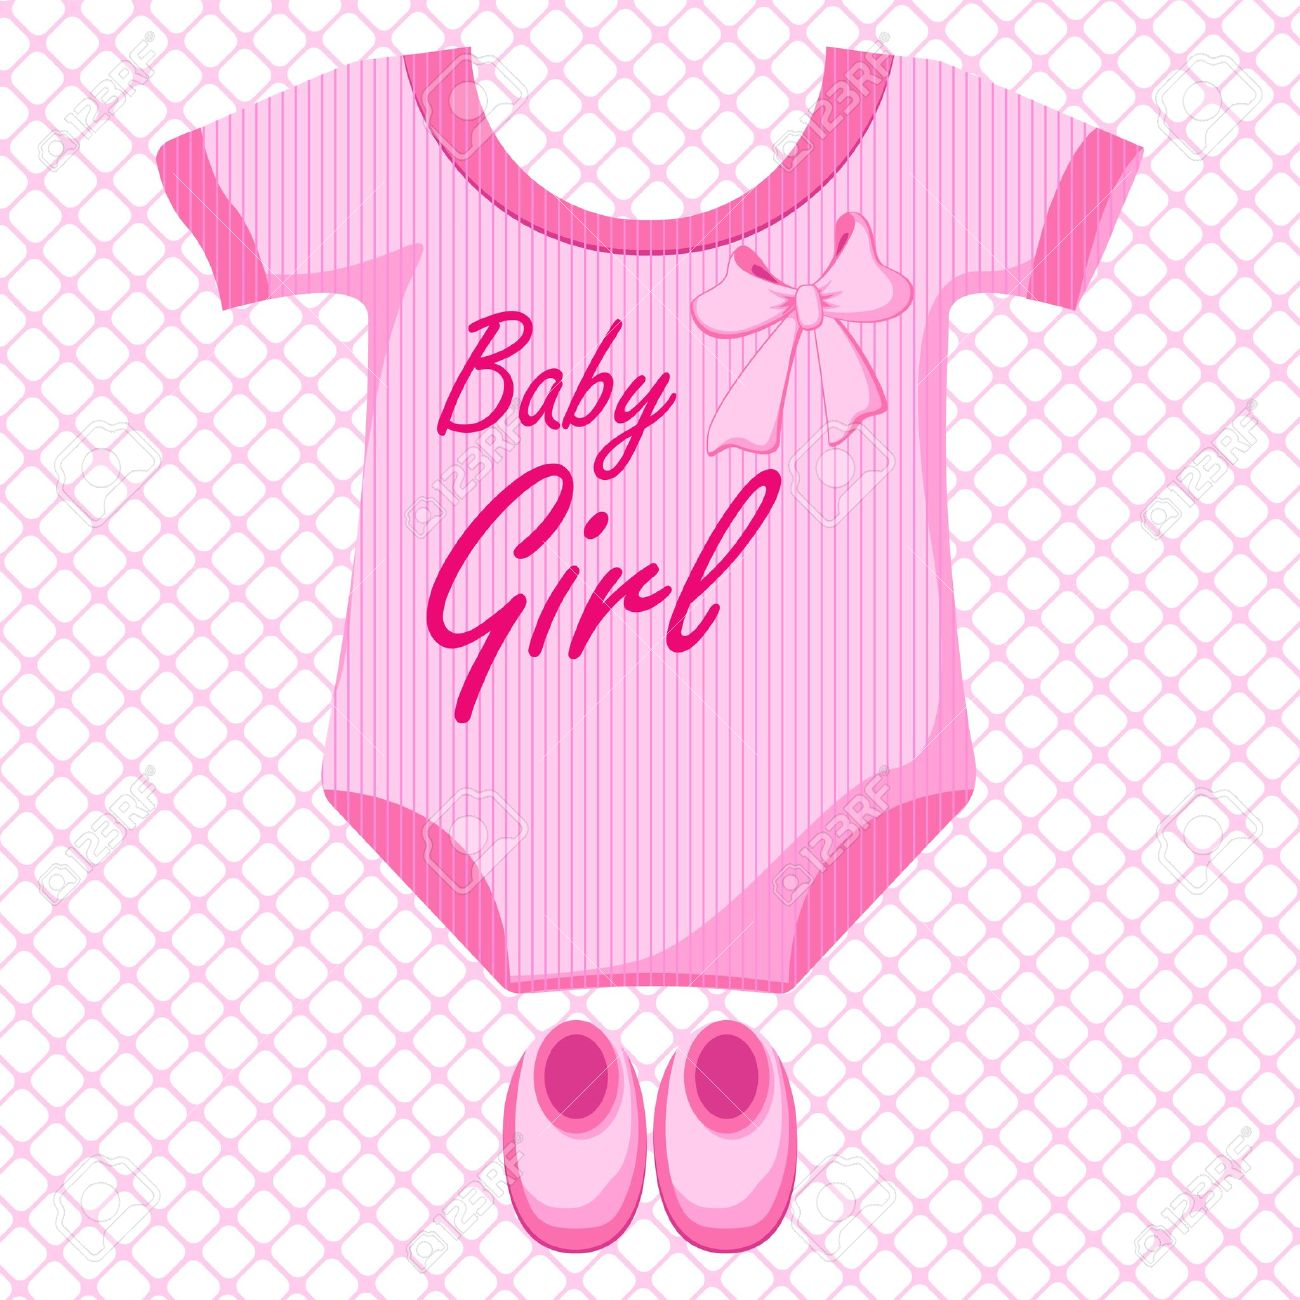 Baby dress clipart 3 » Clipart Station.